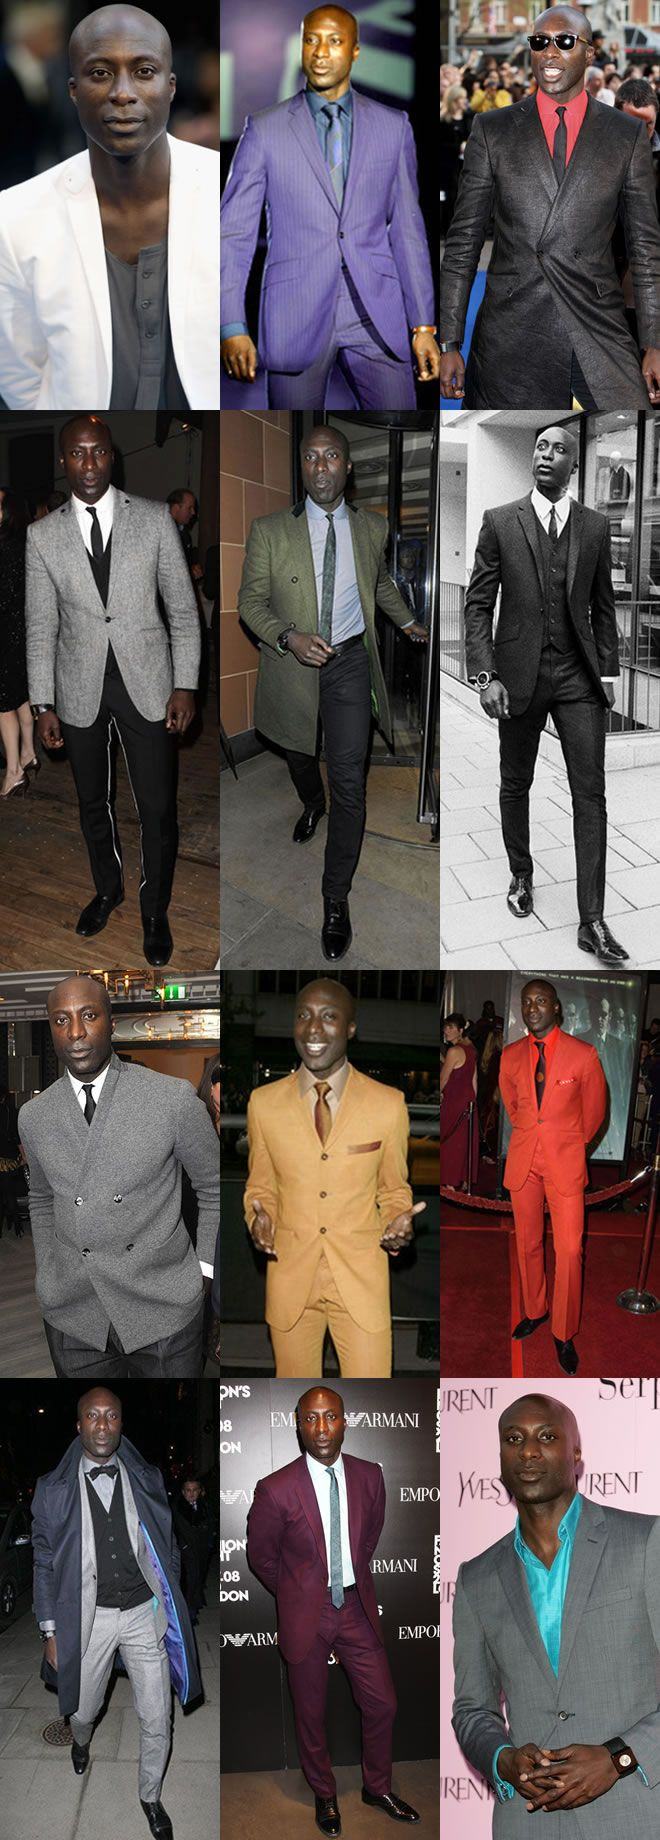 The Ozwald Boateng Men's Look Book He looks great in all his outfits but I feel the majority of pale skin 'whities ' would not 'carry off ' Ozwald's colourful suits, which personally I'd like worn just as blazers ! Would much prefer a smart shirt with collar, to go with white jacket / suit ( ? )